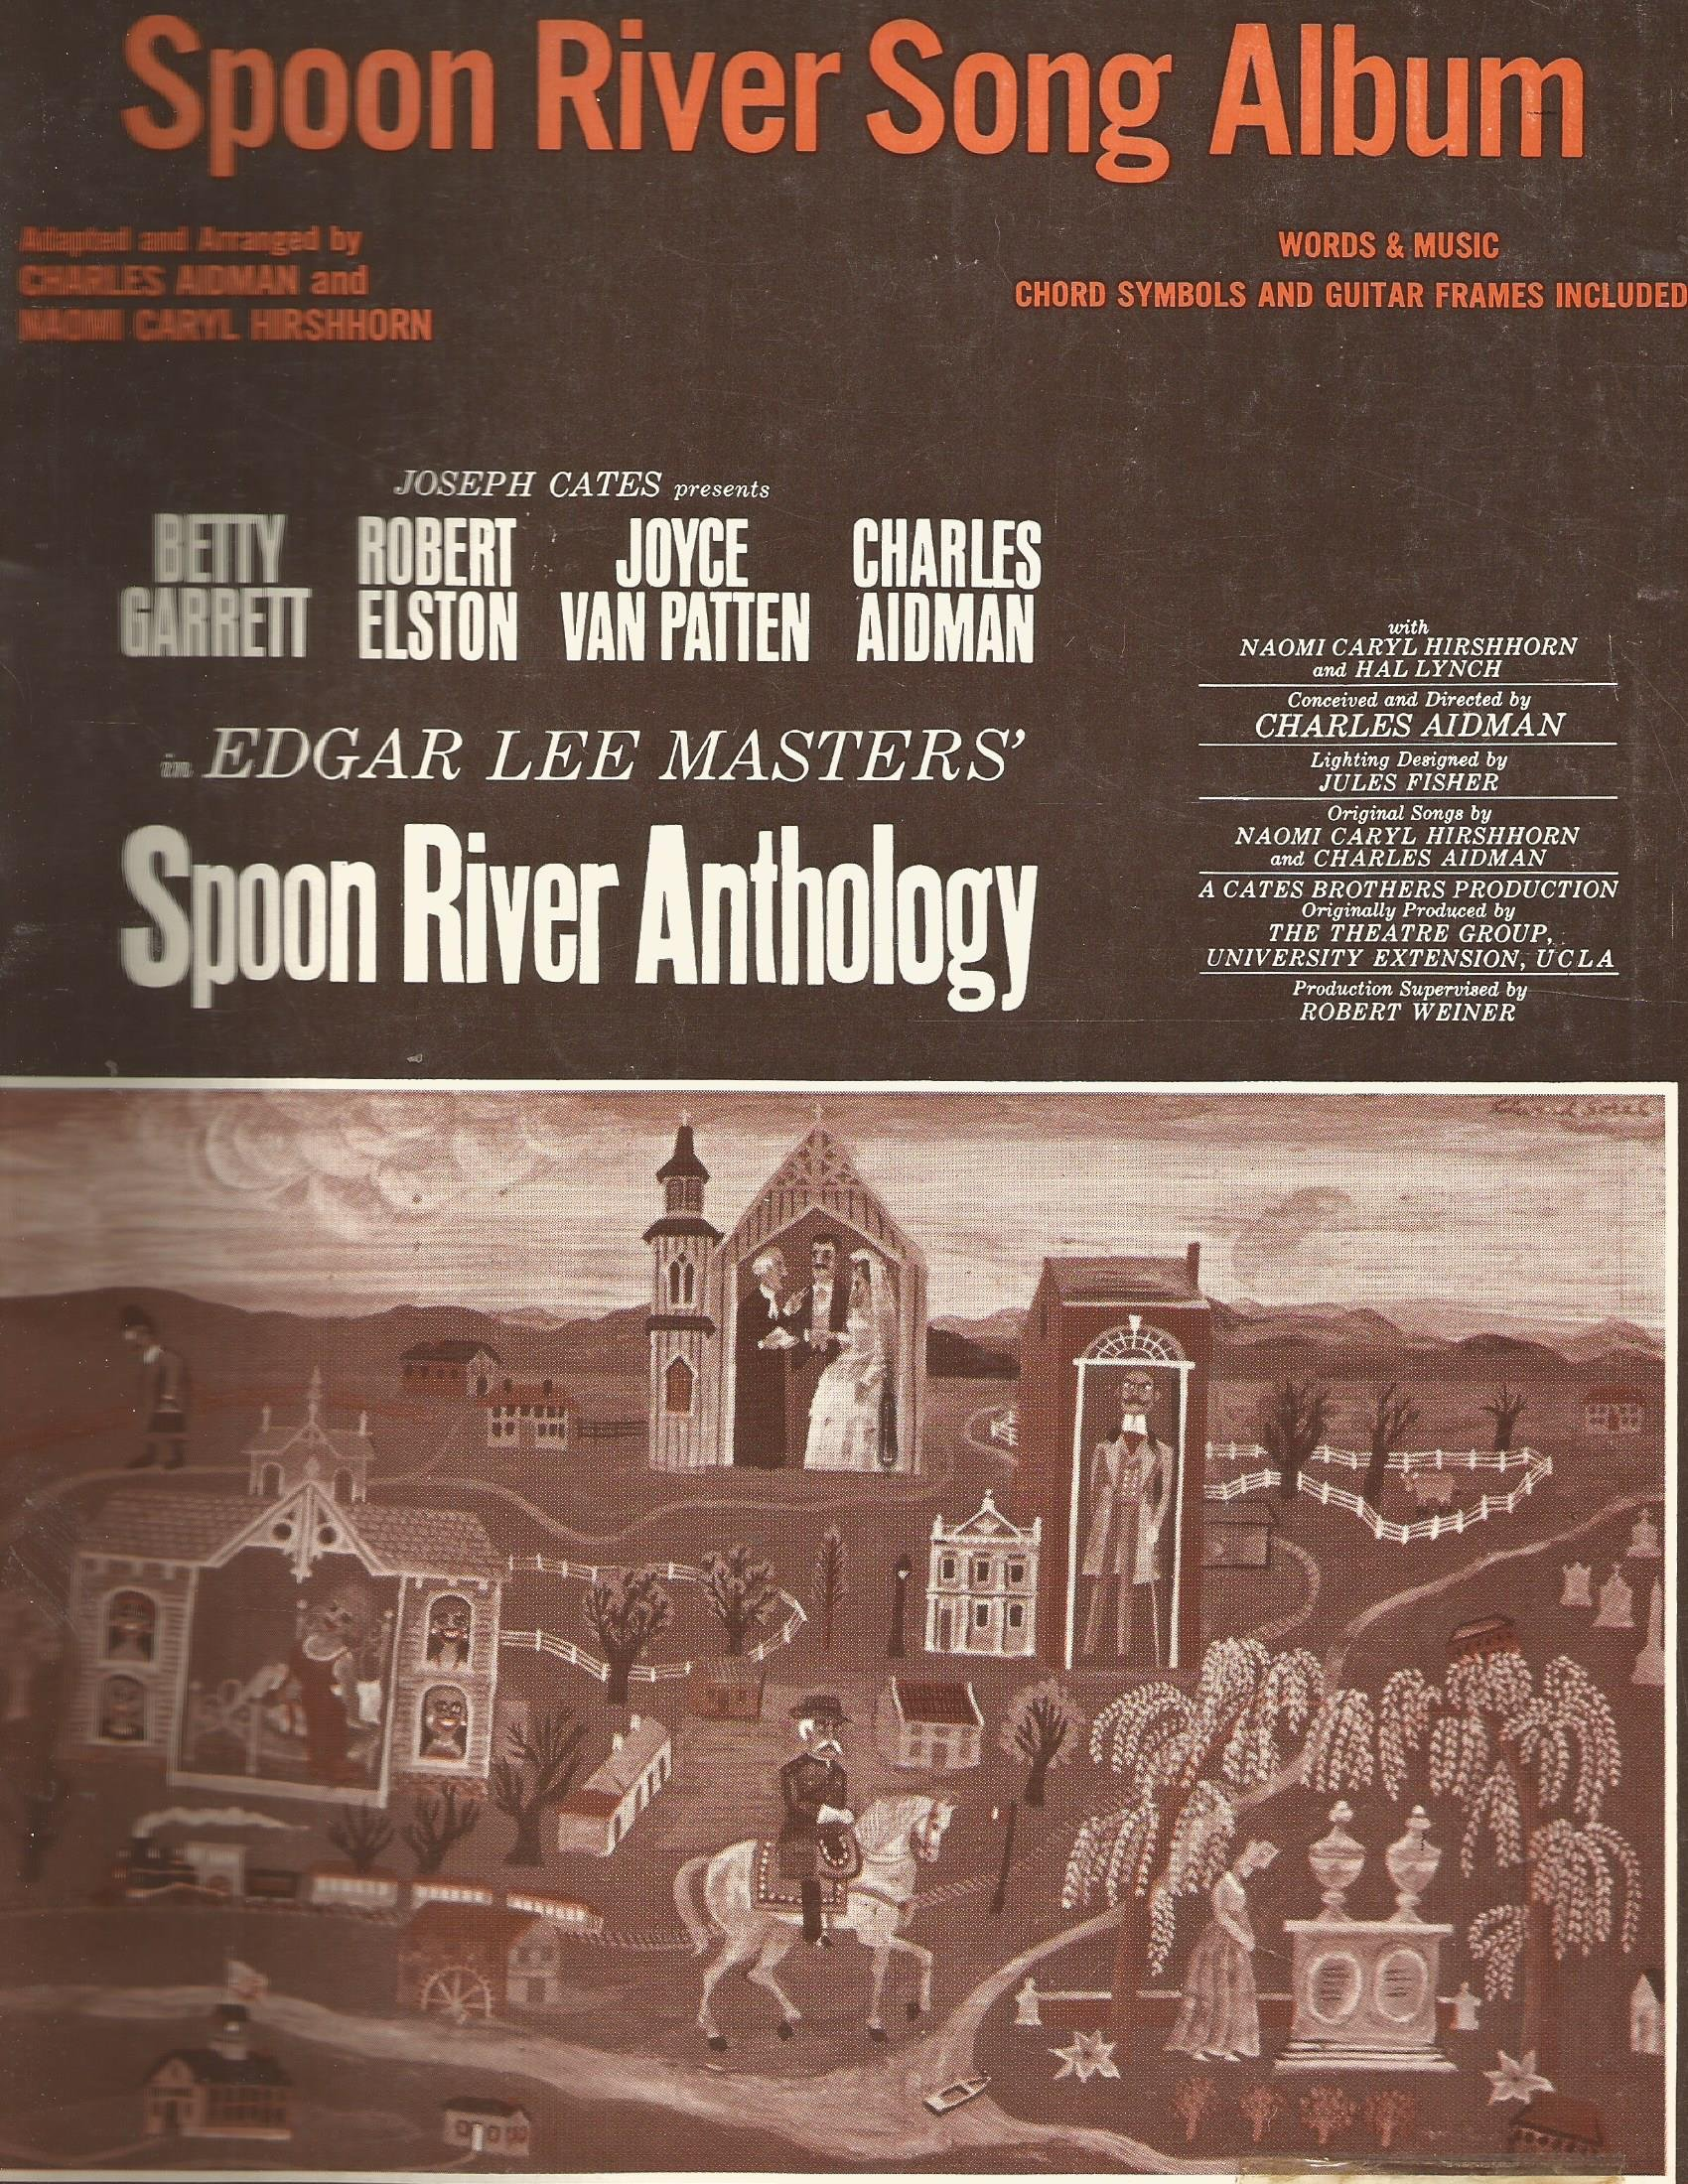 spoon river song album 1956 piano vocal chords